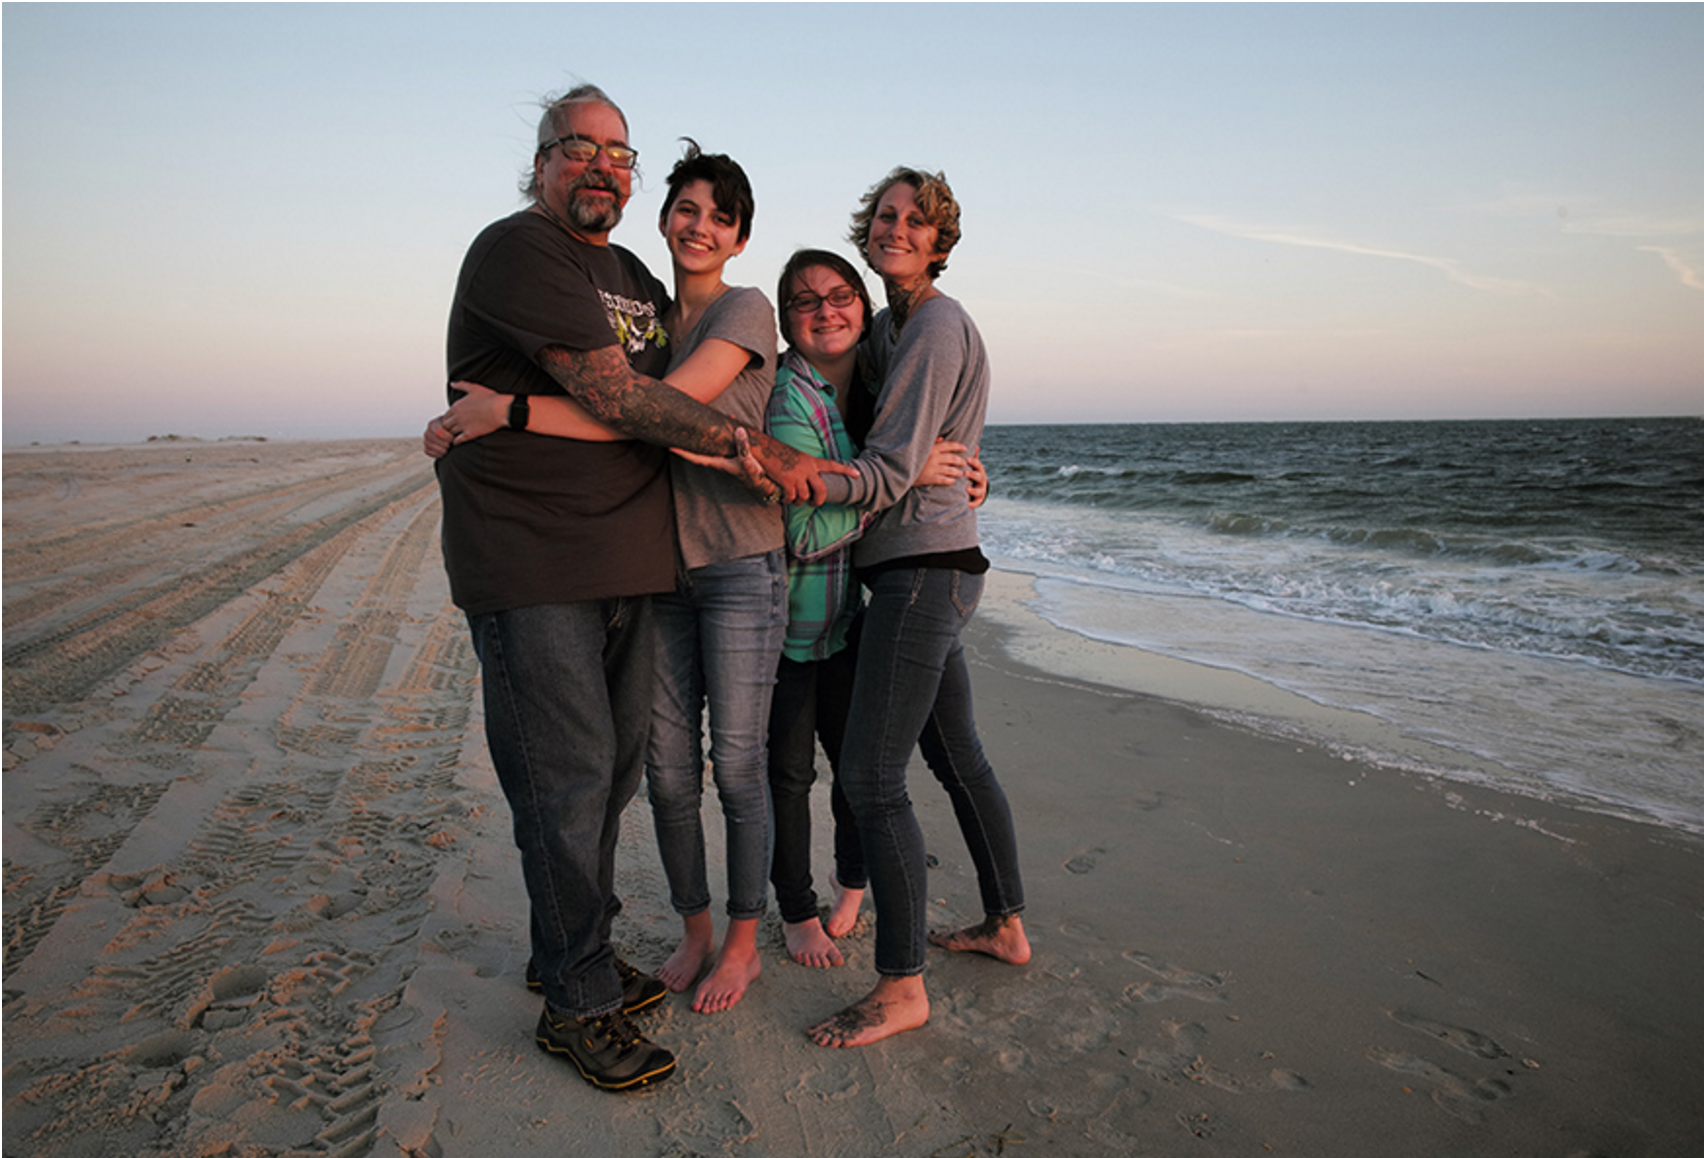 Beth Fairchild and her Family   (photo: storyhalftold.com)